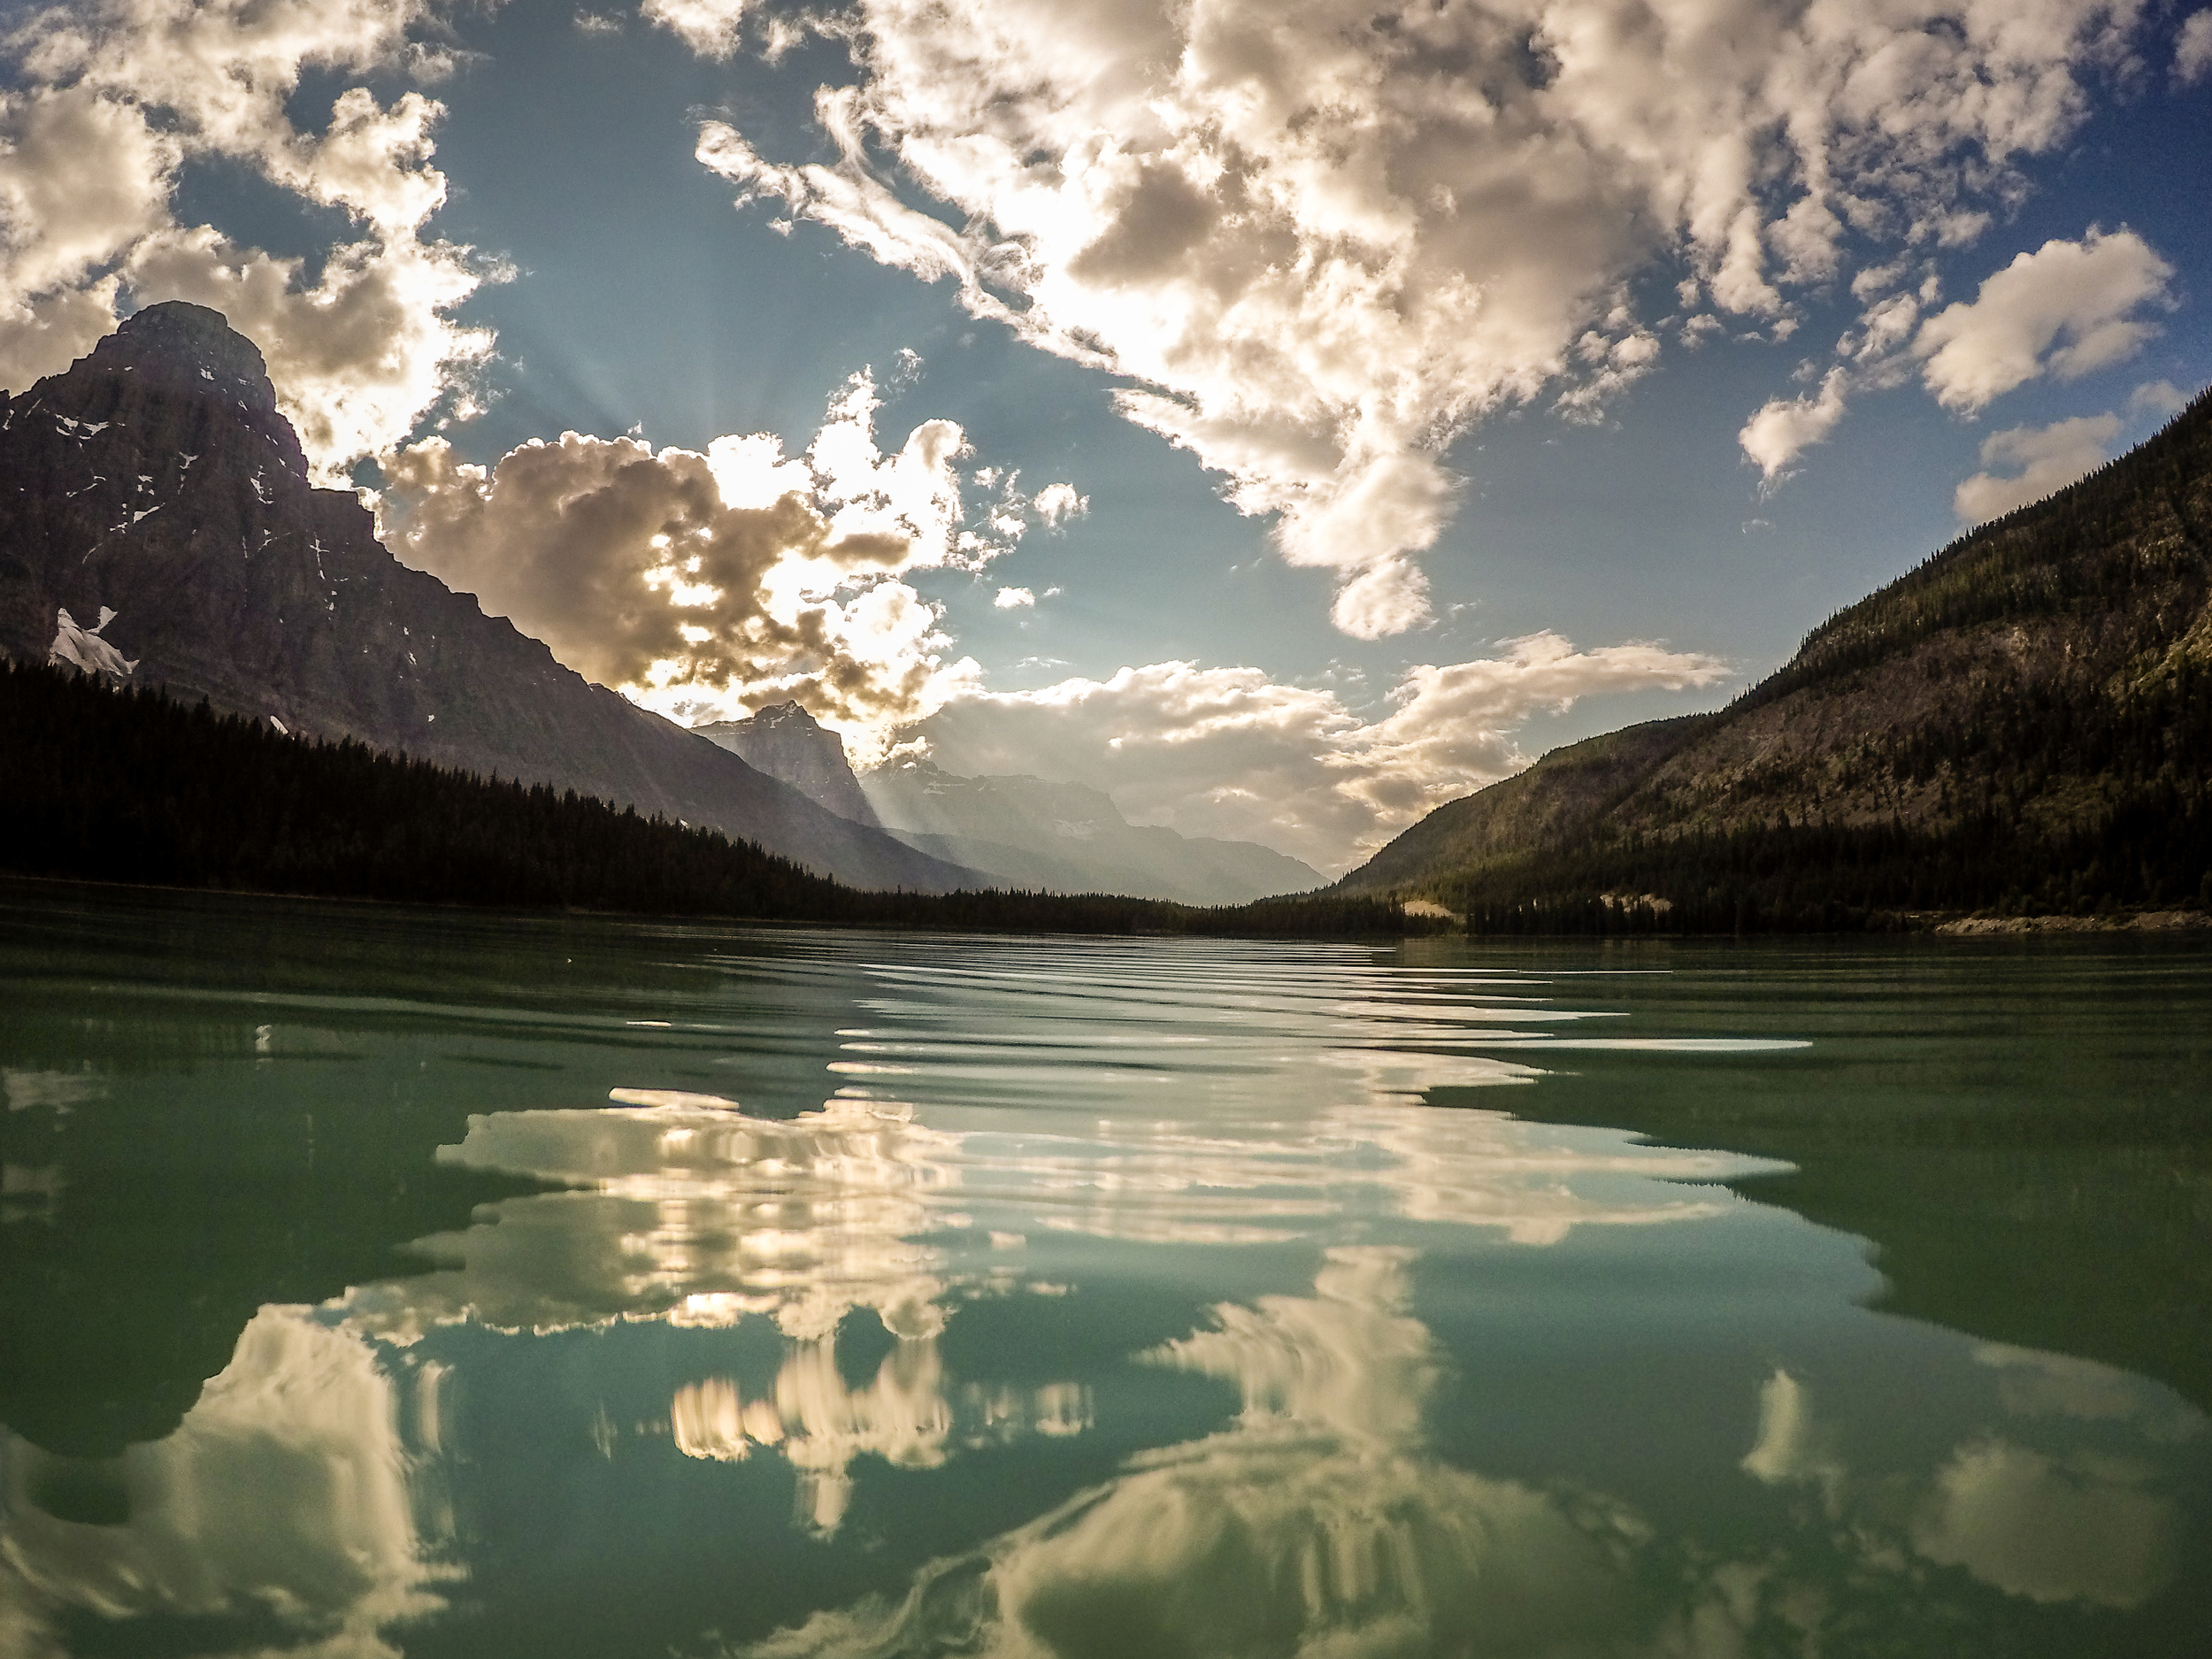 A beautiful reflection of the cloudy sky on Waterfowl Lake.